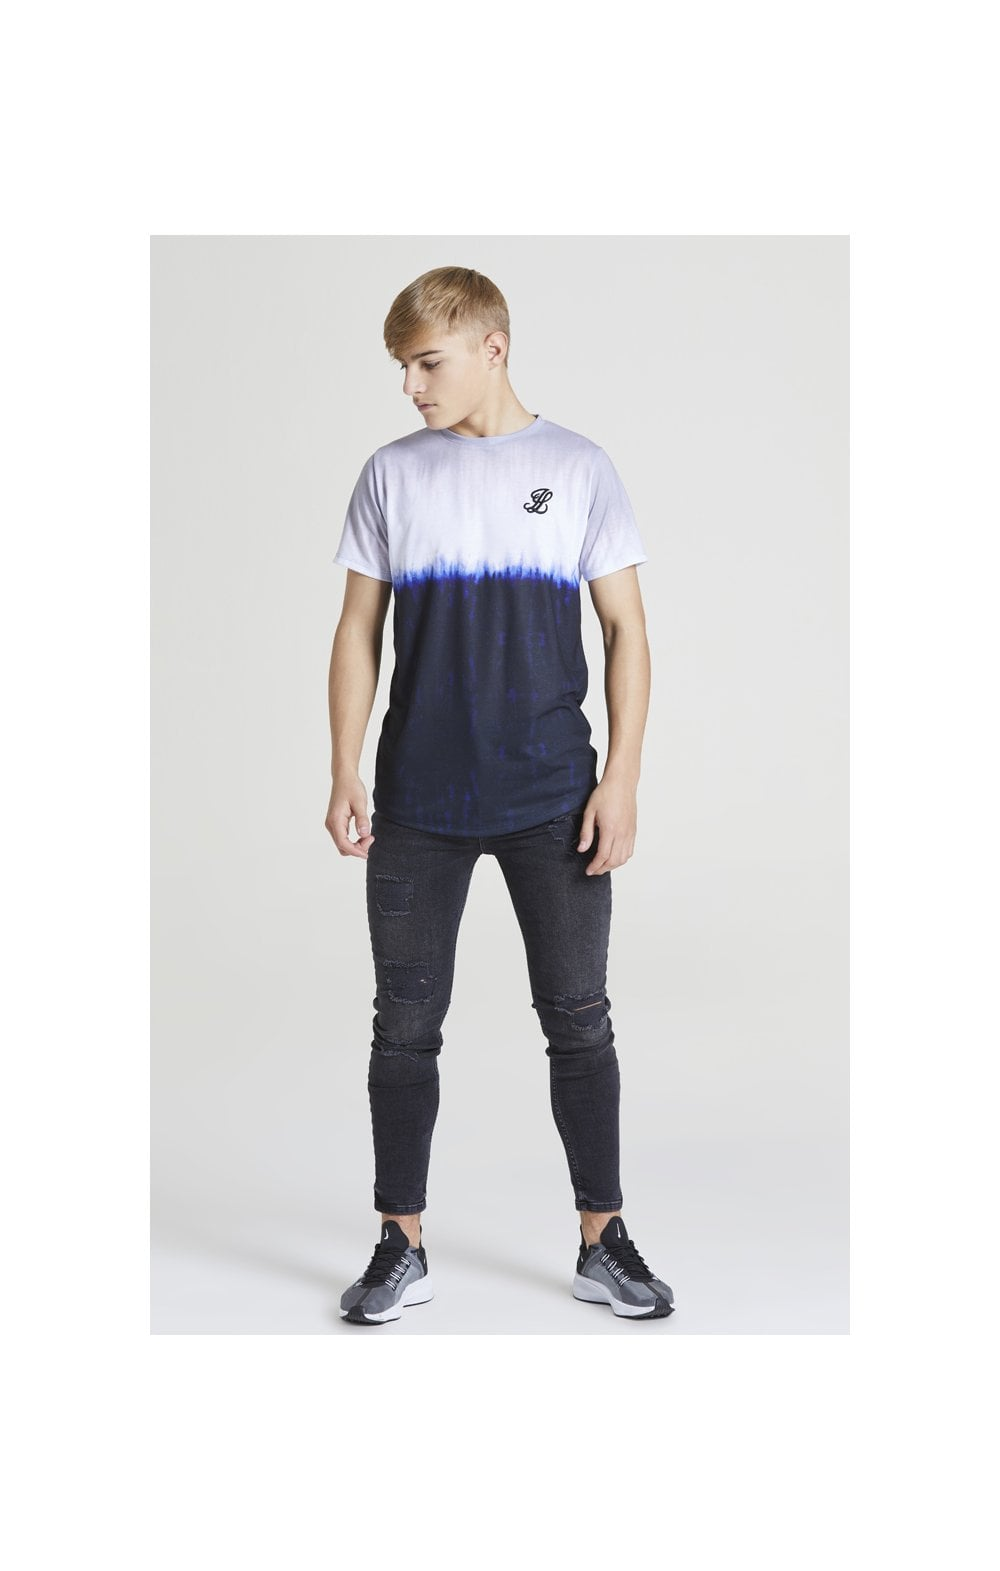 Illusive London Tie Dye Fade Tee - Grey, Navy & white (2)